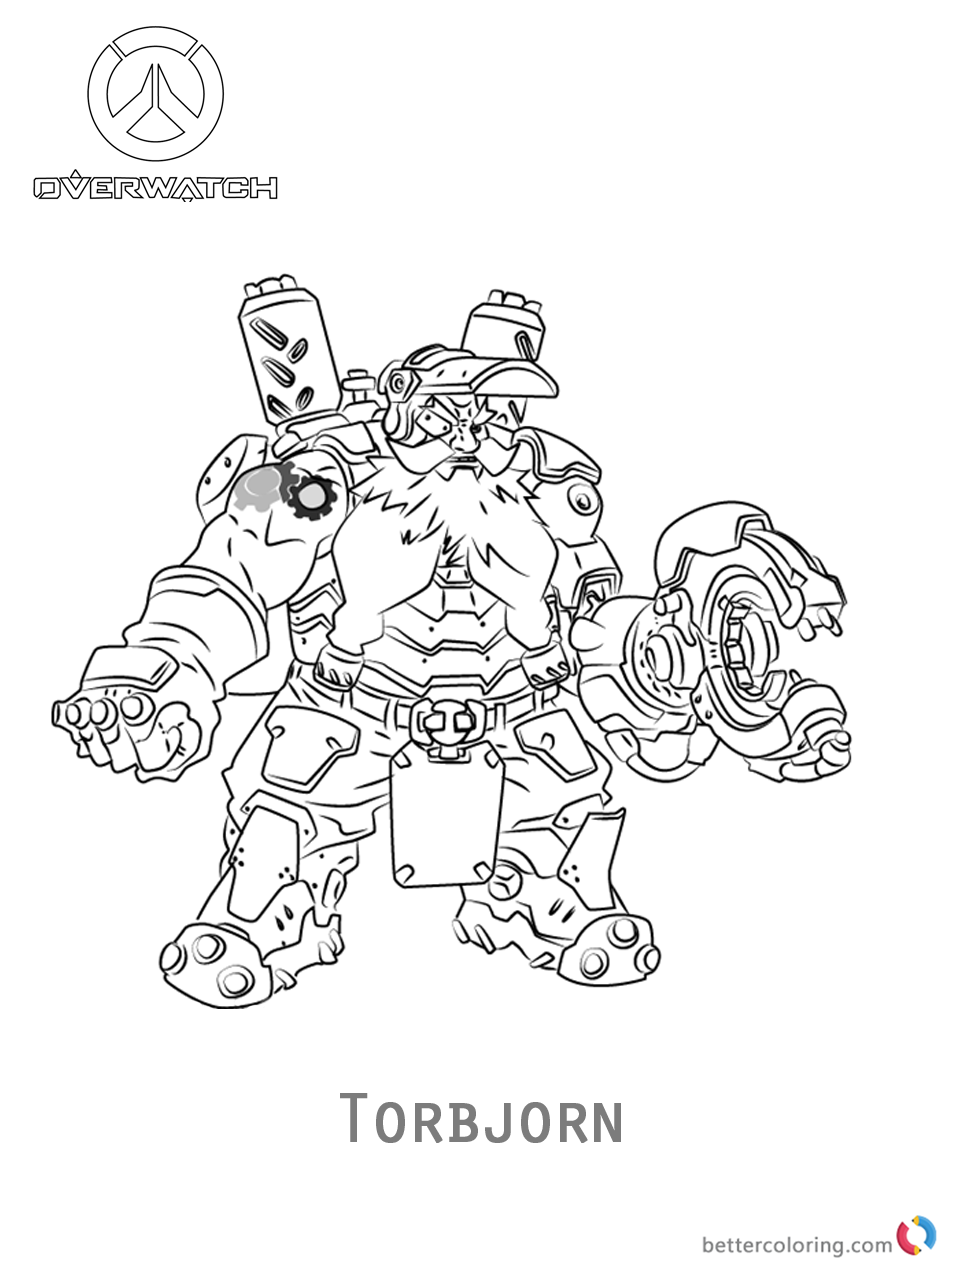 Torbjorn From Overwatch Coloring Pages Free Printable